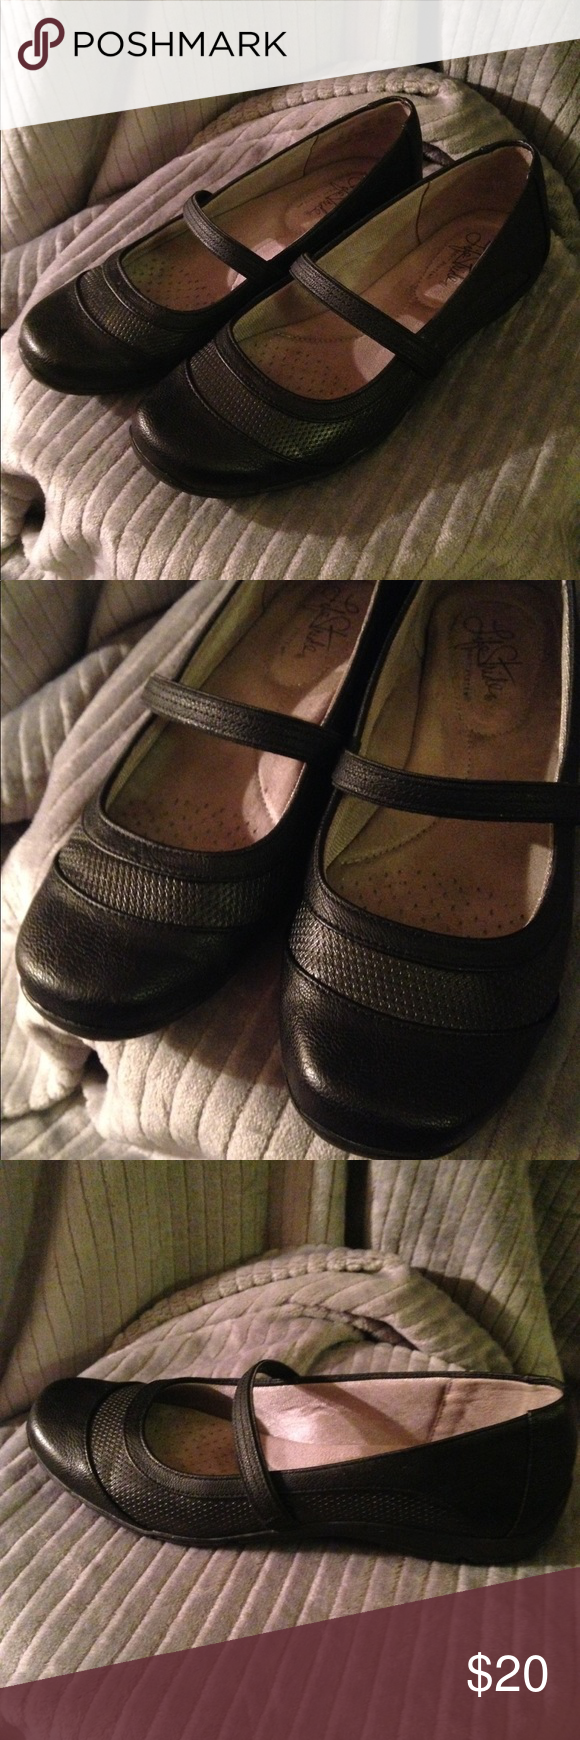 Comfort Shoes Beautiful Euc Women's Gap Comfort Shoes Mary Janes Flats Loafers Brown Size 7 100% High Quality Materials